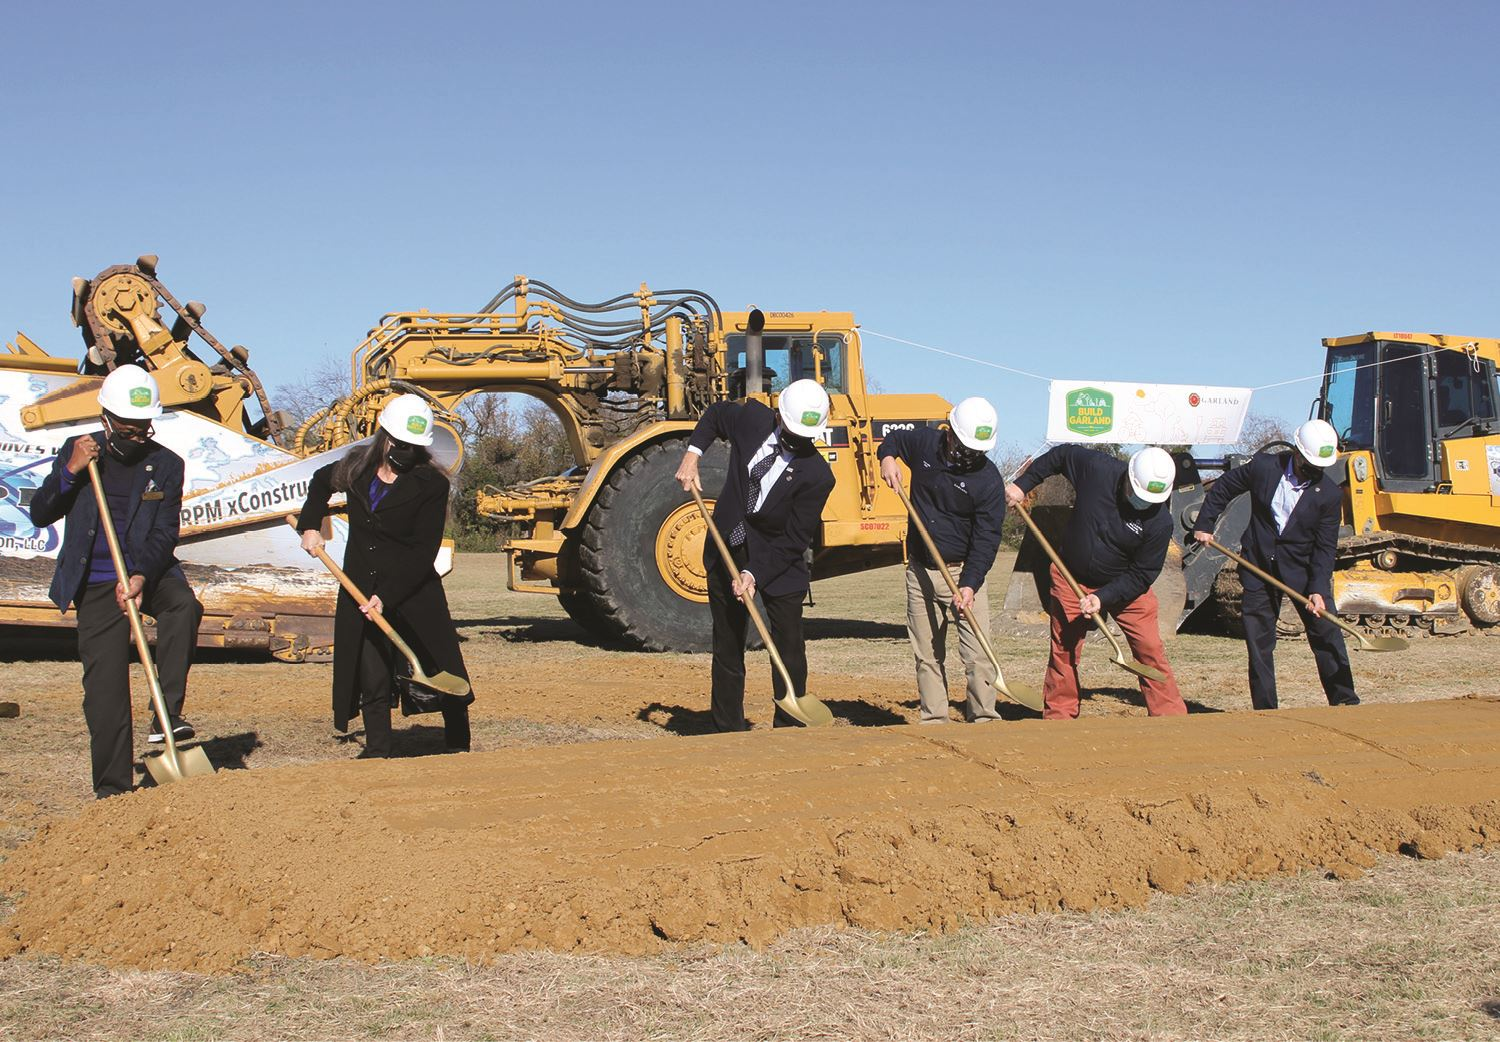 Animal Shelter Groundbreaking Ceremony